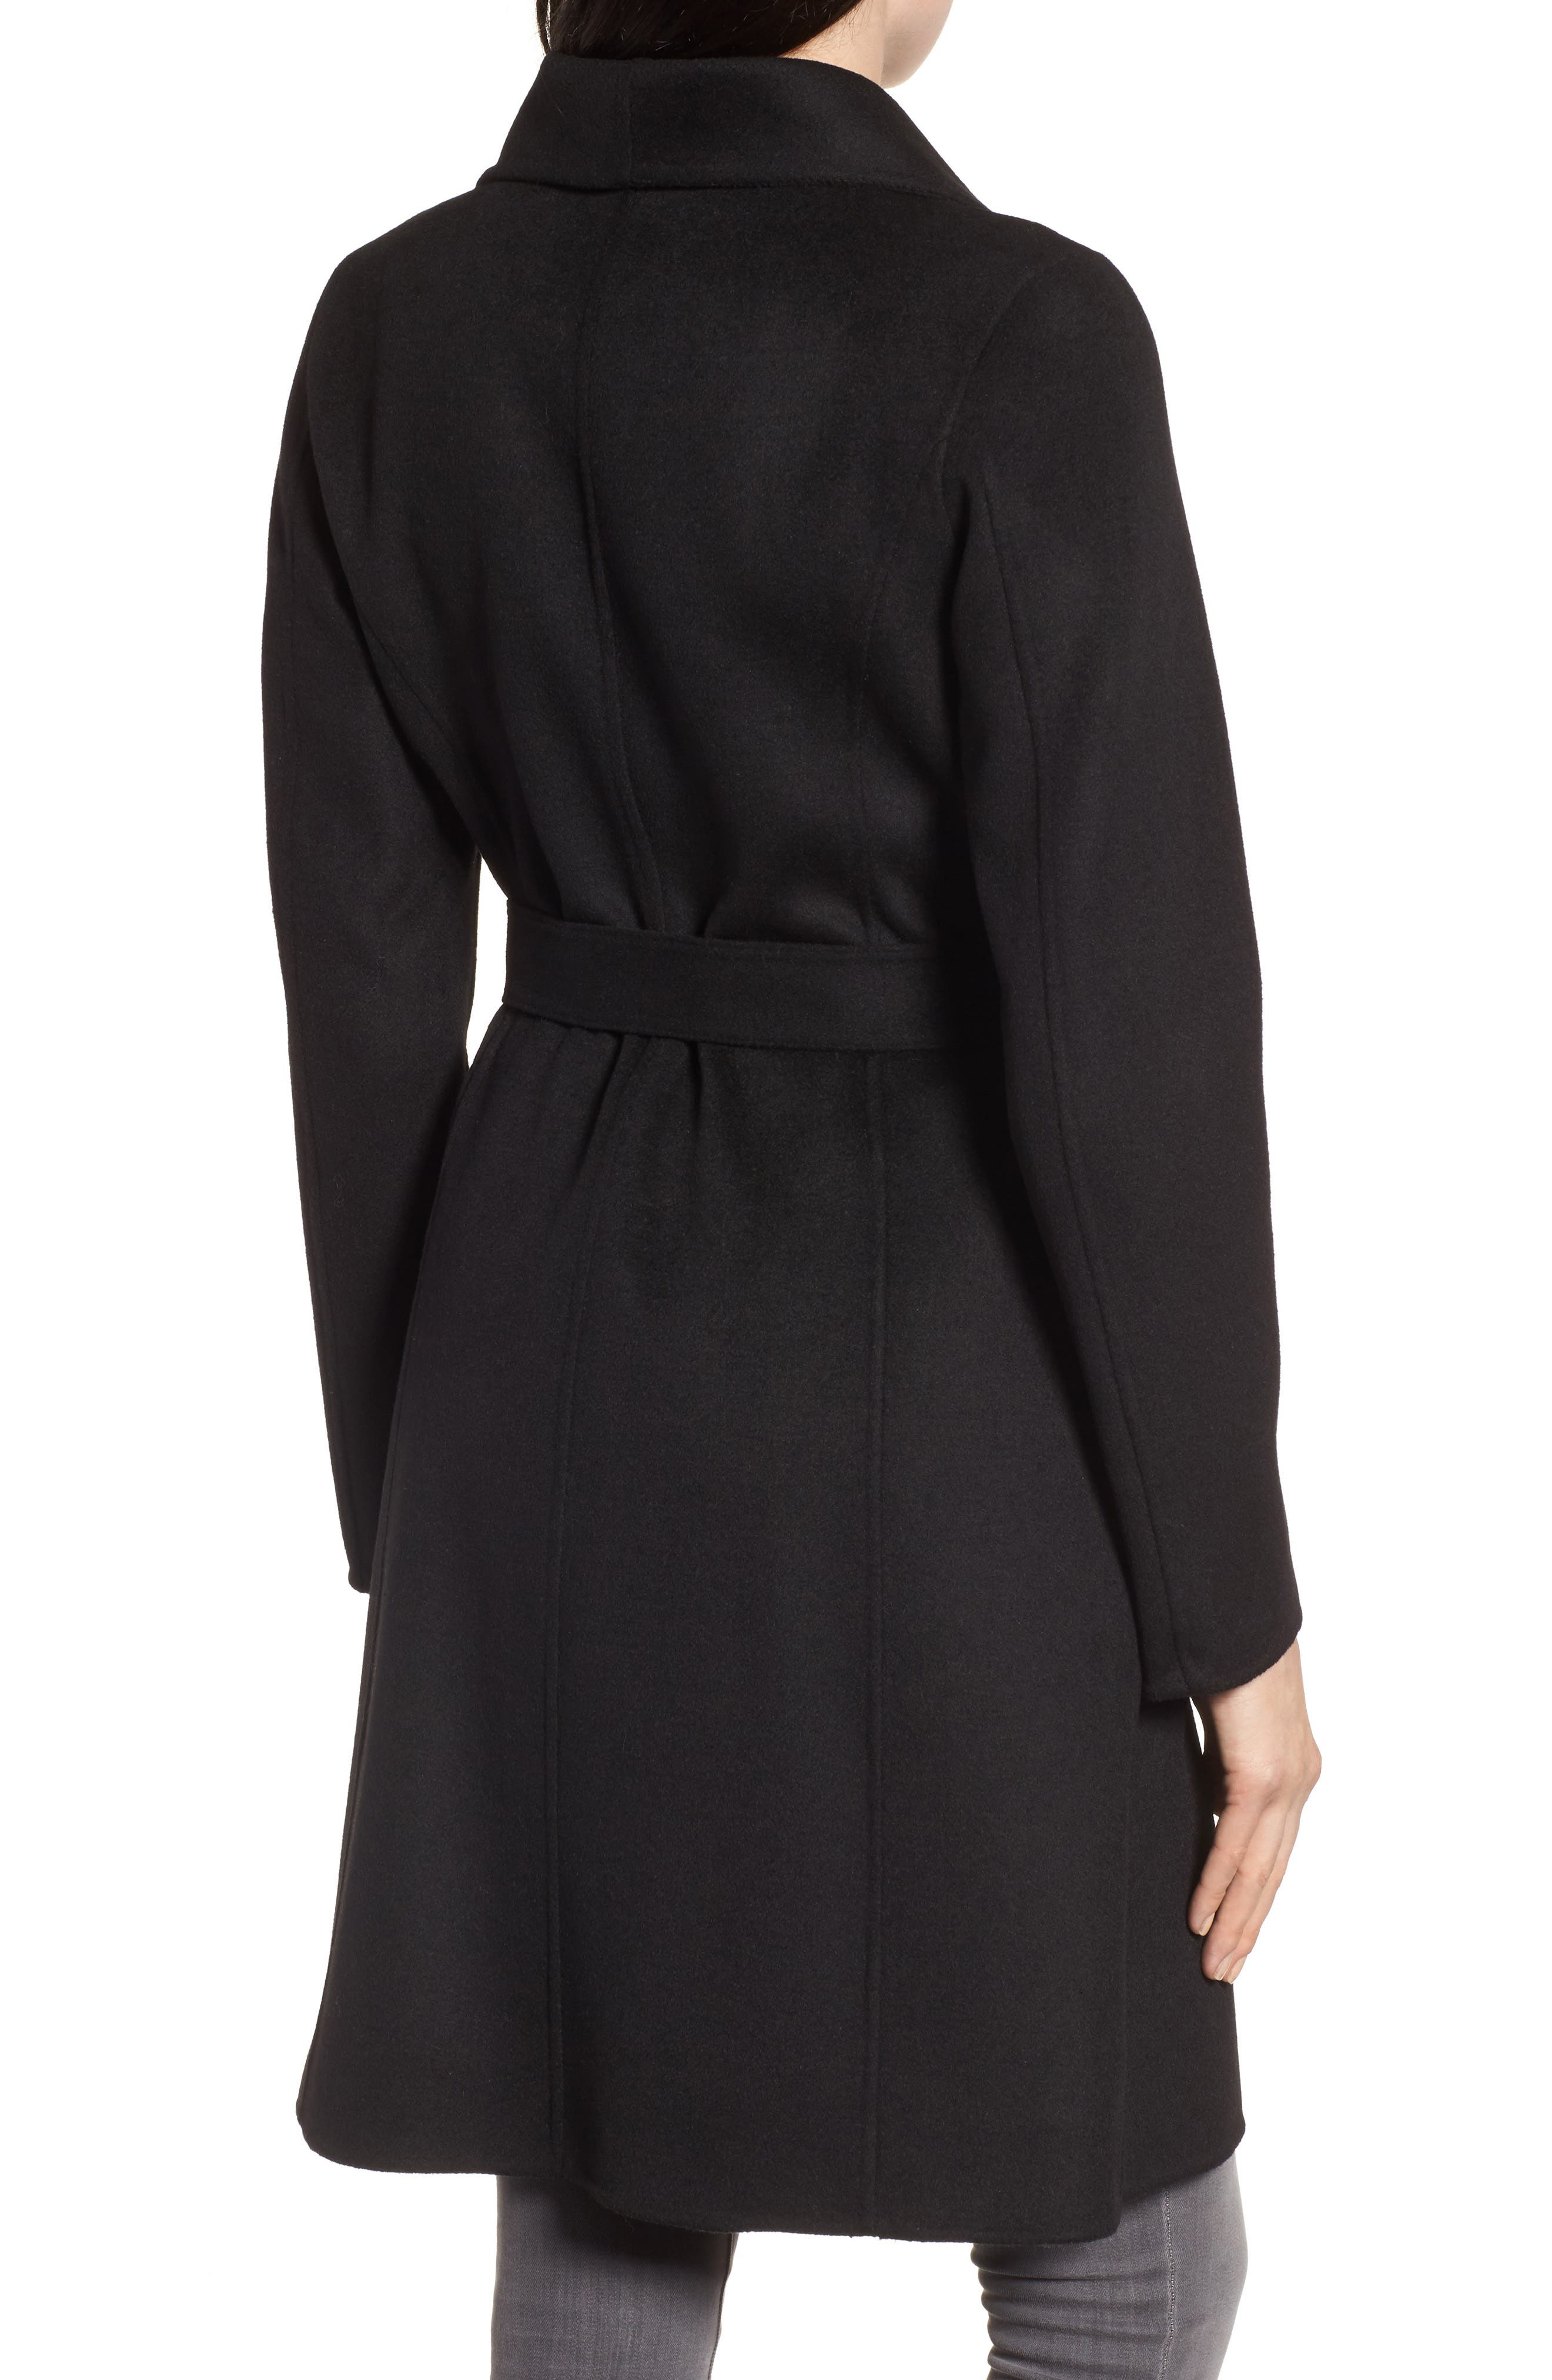 Ellie Double Face Wool Blend Wrap Coat,                             Alternate thumbnail 2, color,                             Black